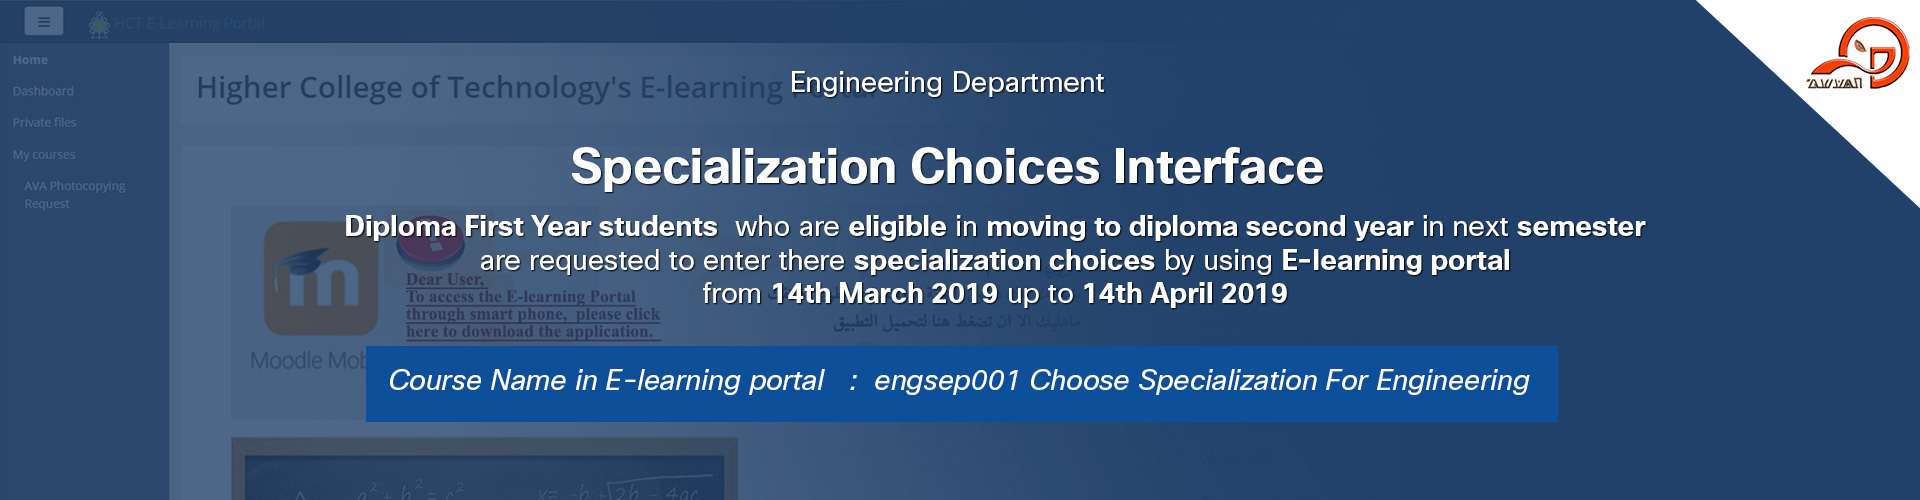 Engineering - Specialization Choices Interface